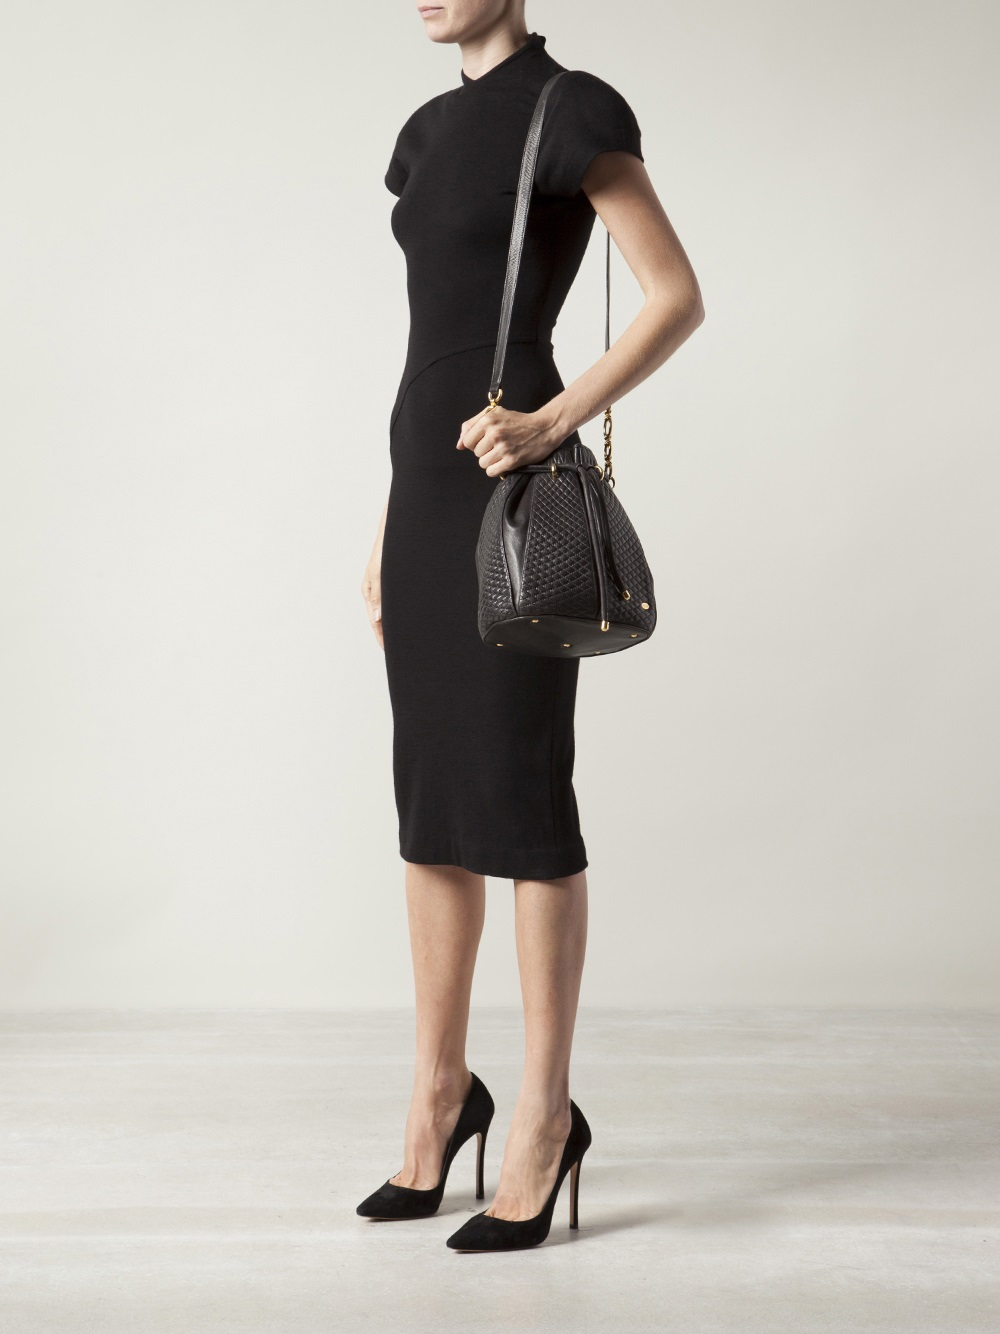 Bally Quilted Leather Drawstring Bag in Black | Lyst : bally quilted bag - Adamdwight.com